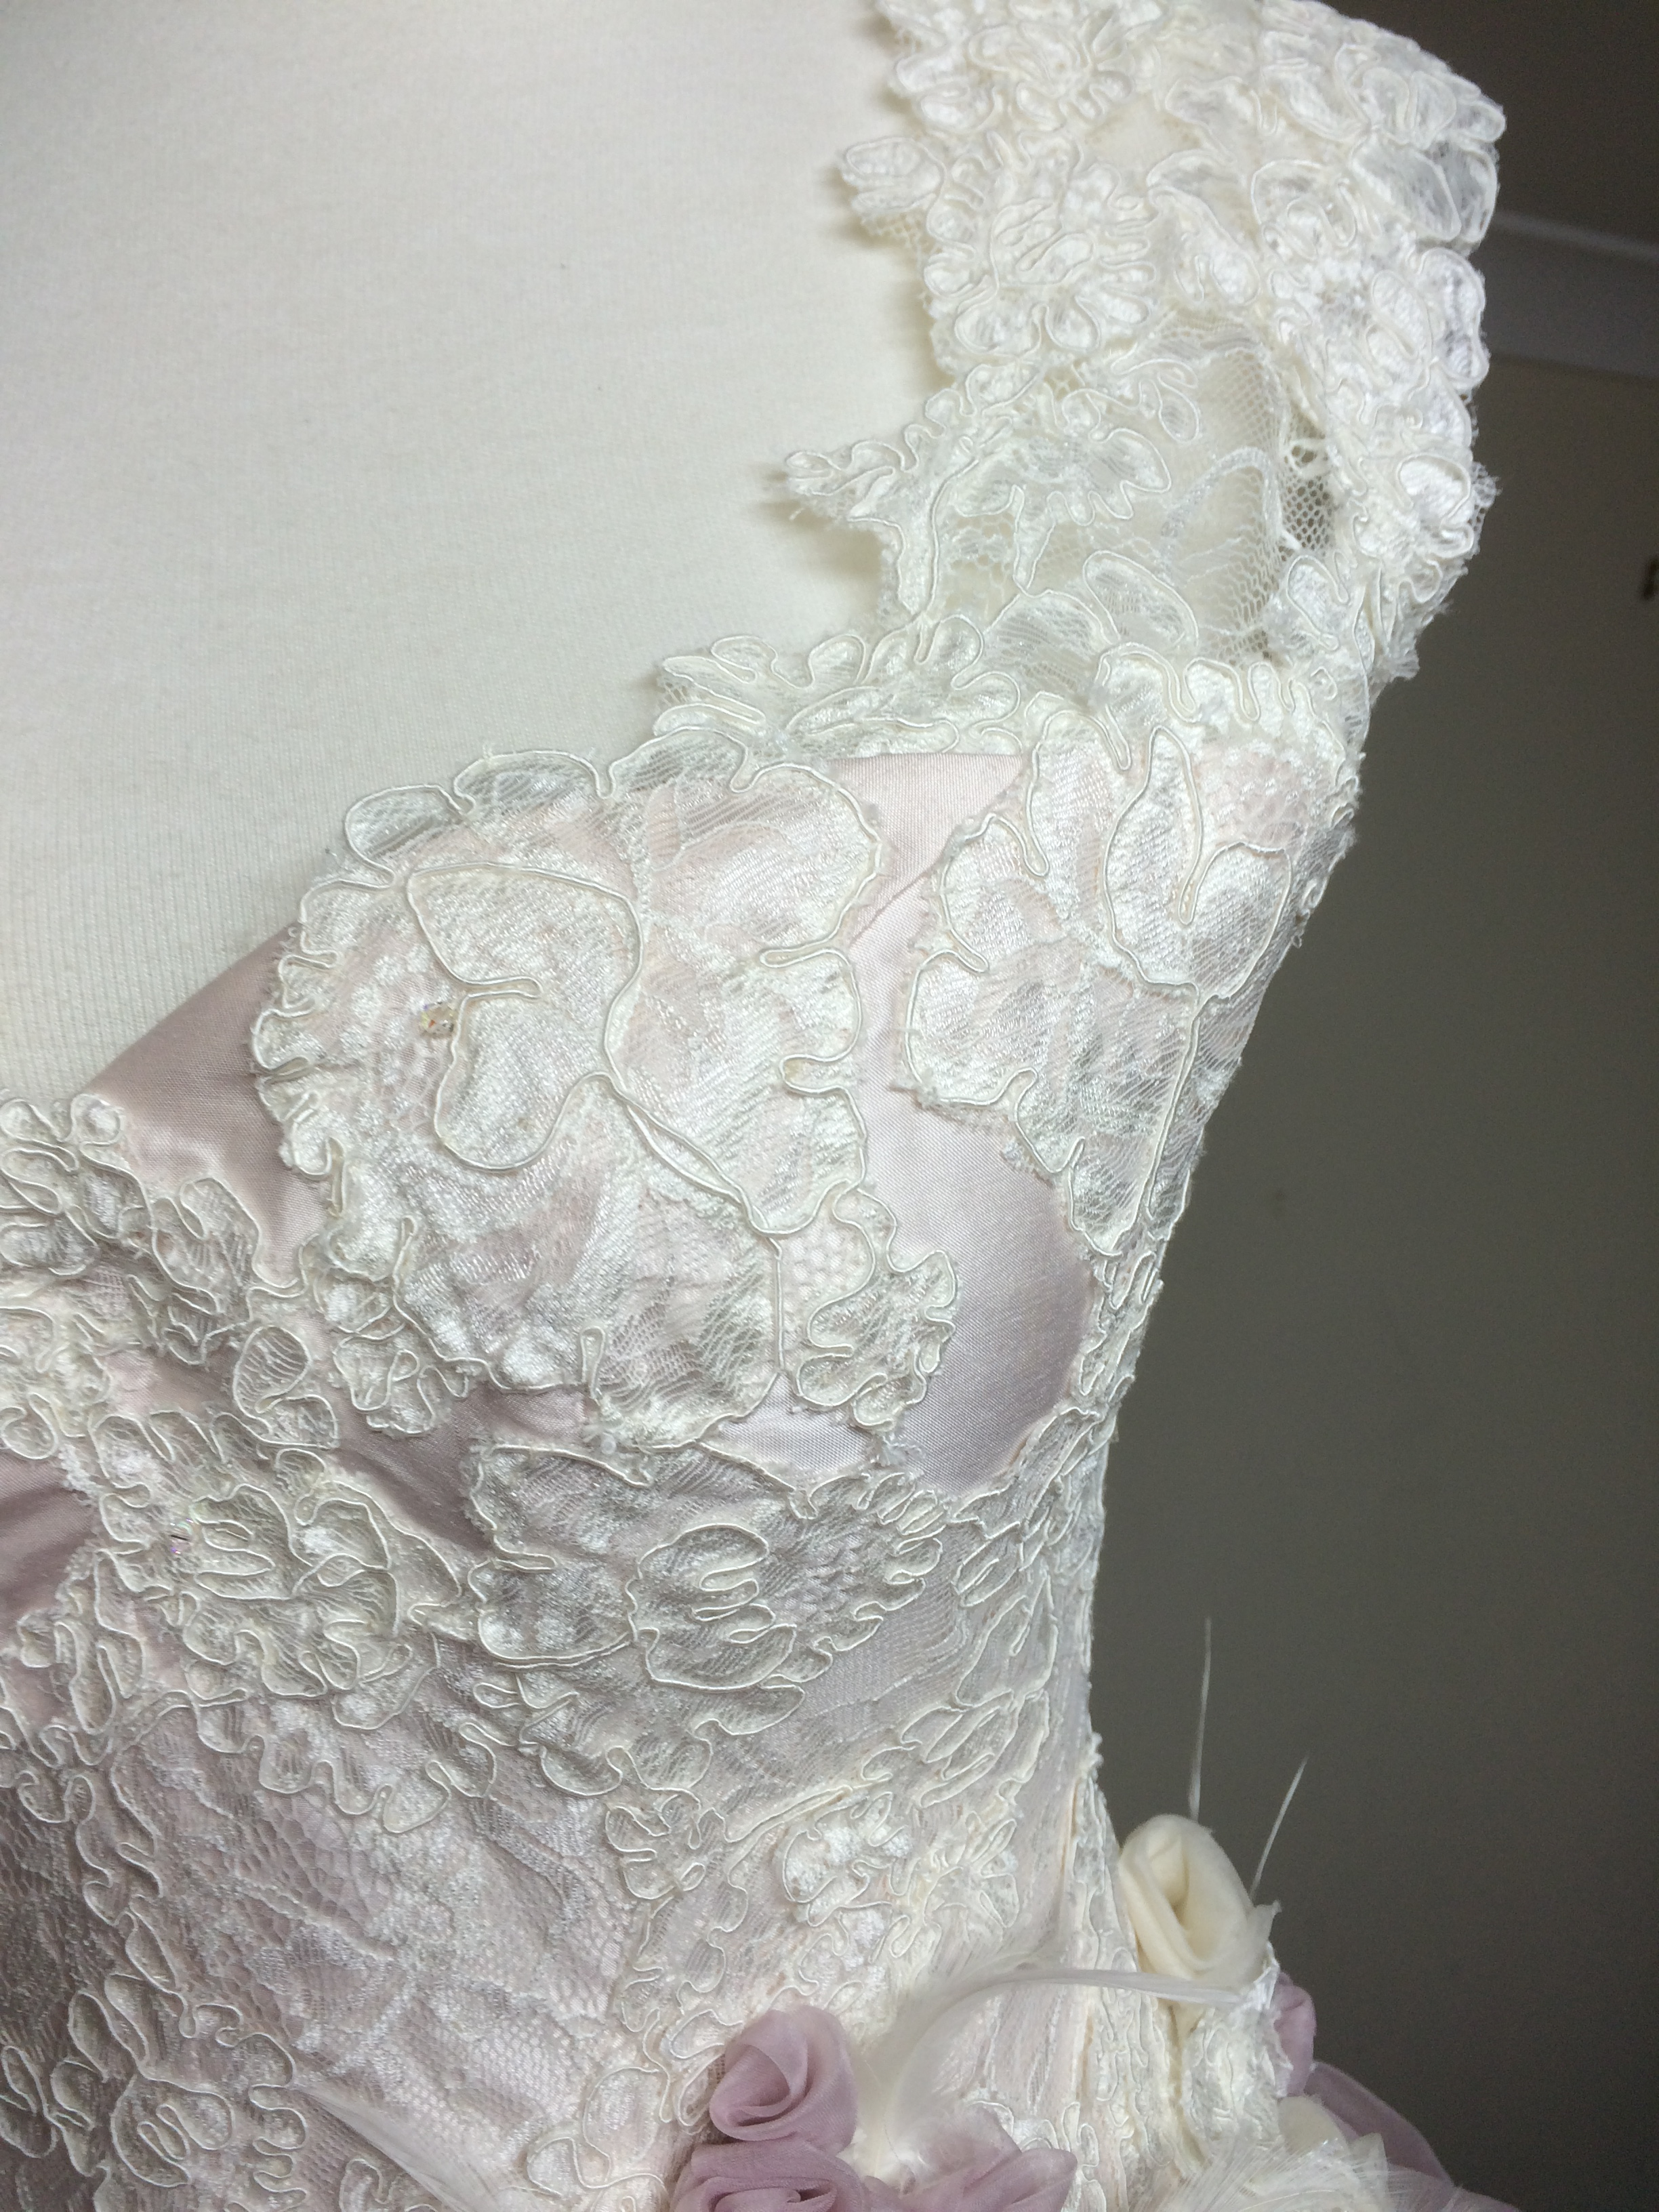 All the lace is fitted to the gown and then stitched by hand into place, leaving no seam lines to destroy the effect of the lace.